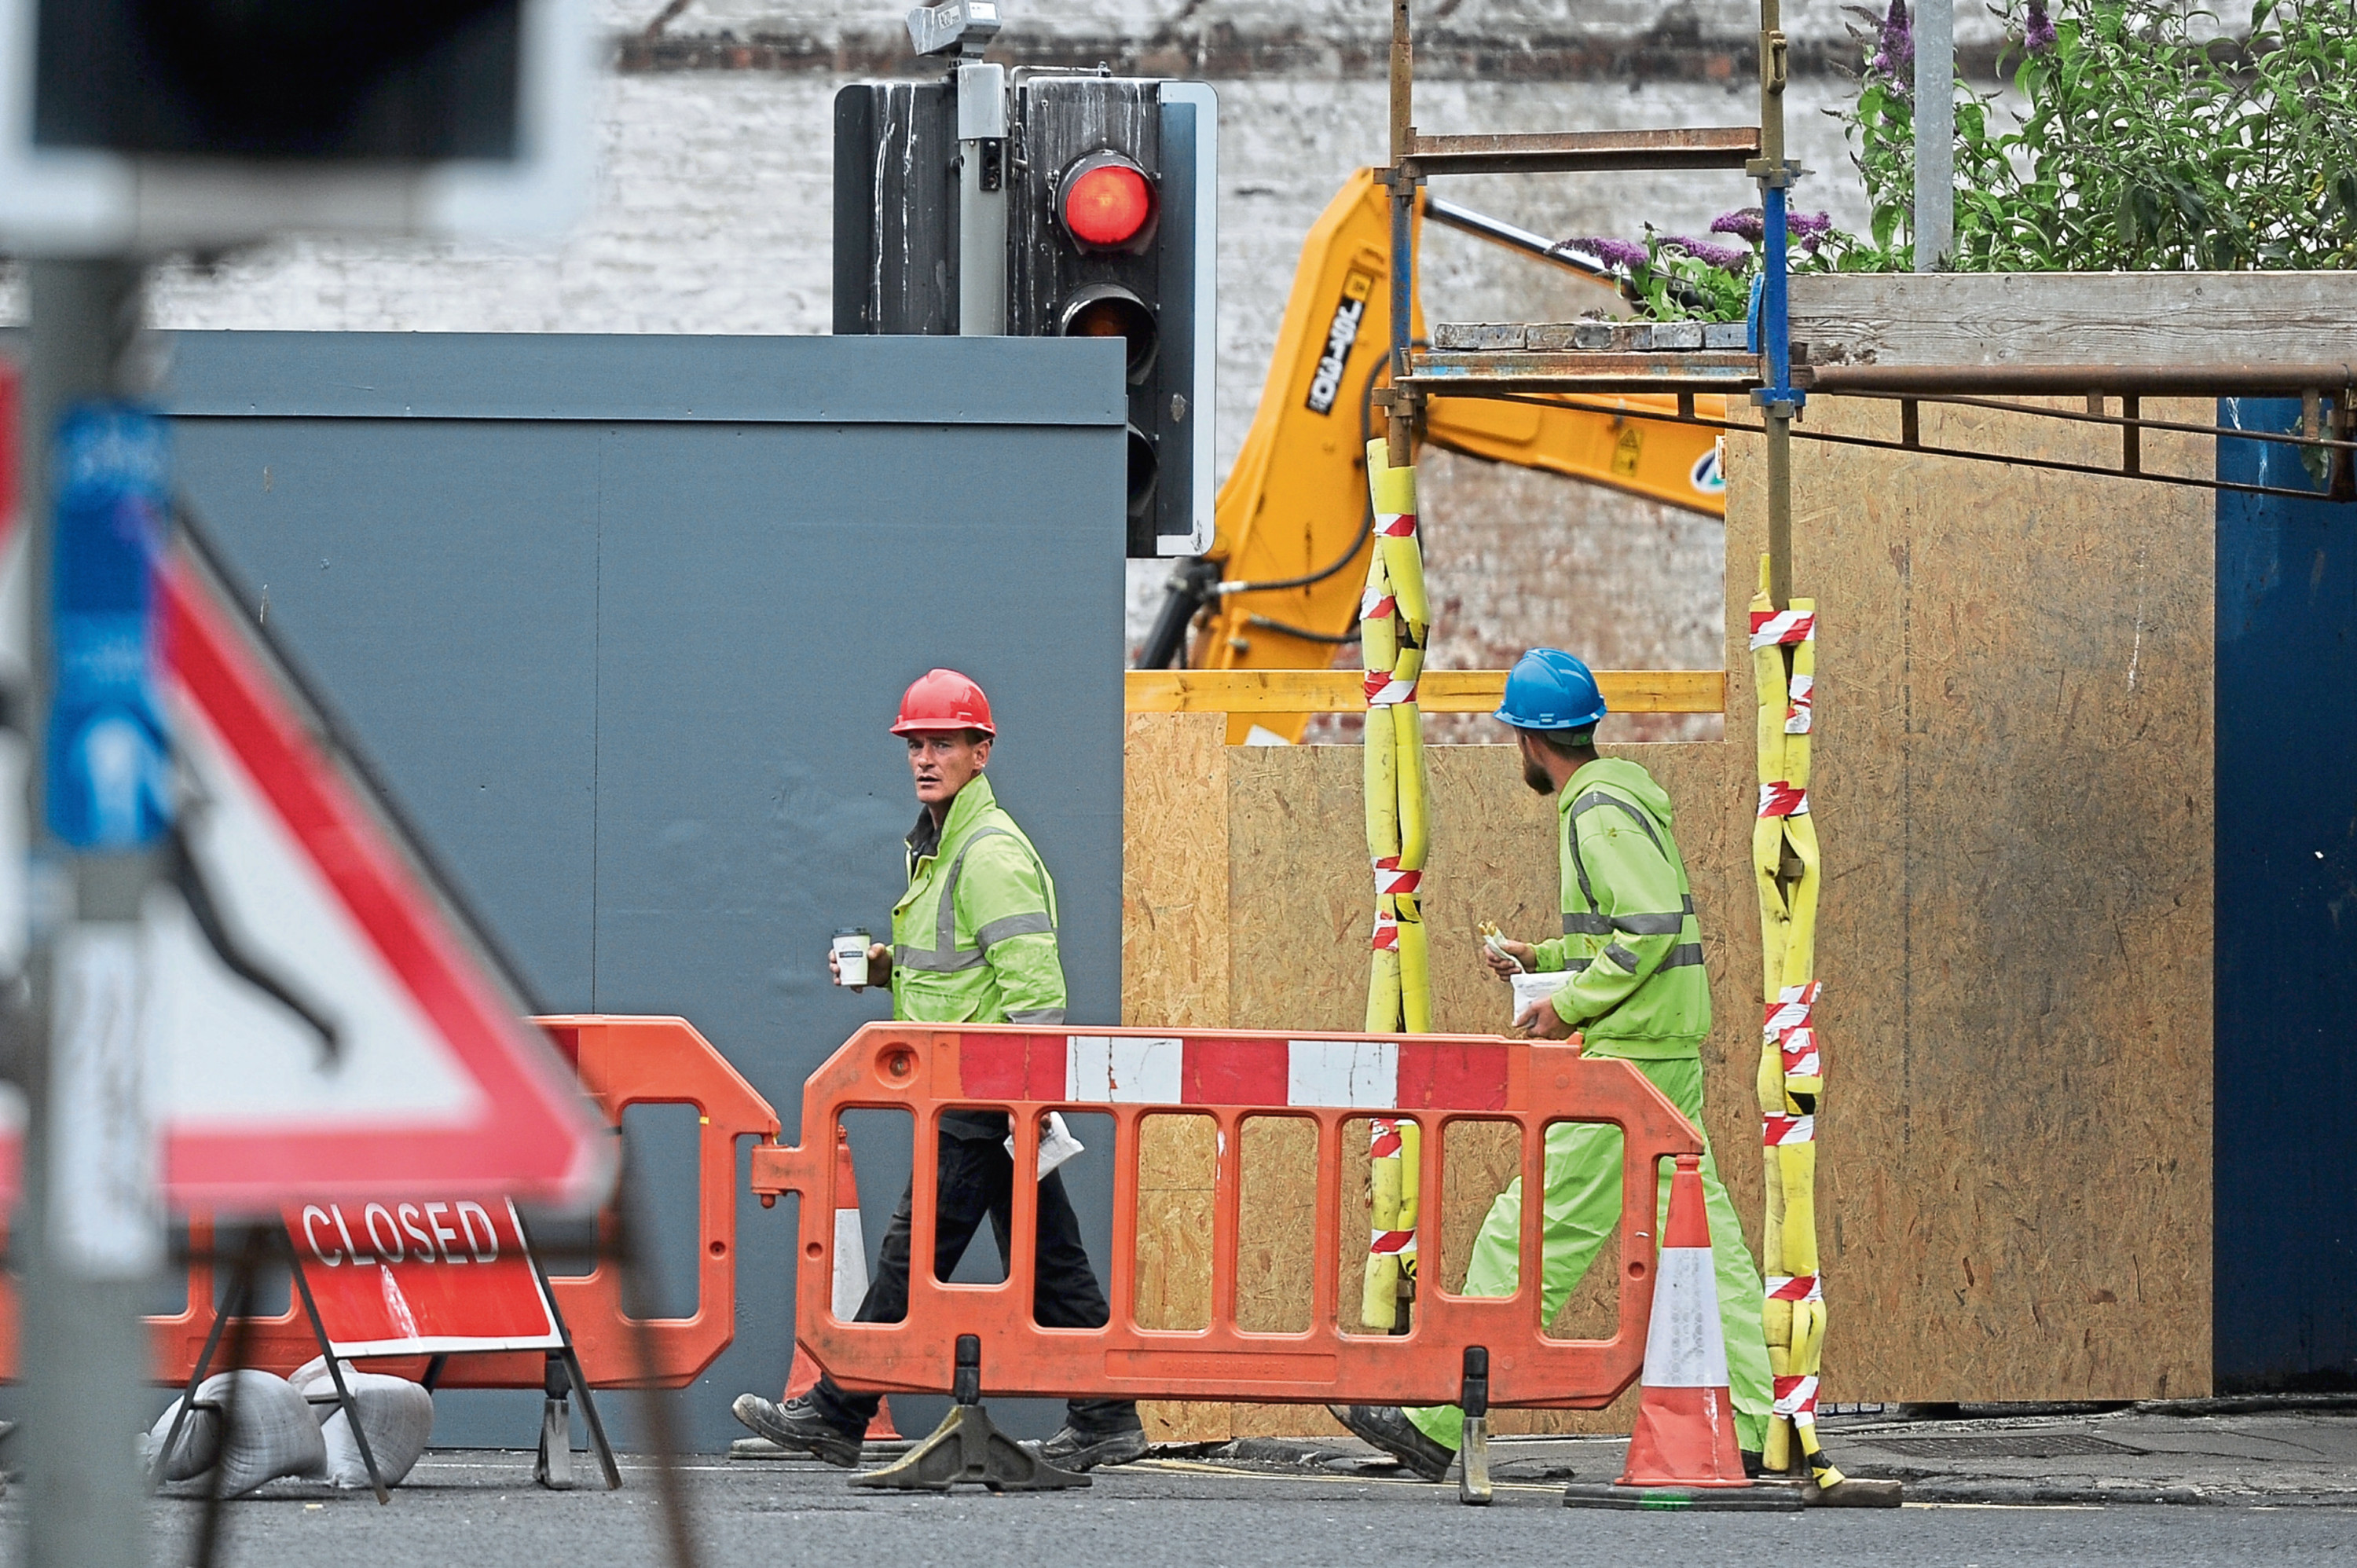 Workers at Seagate,at the top of Trades Lane.